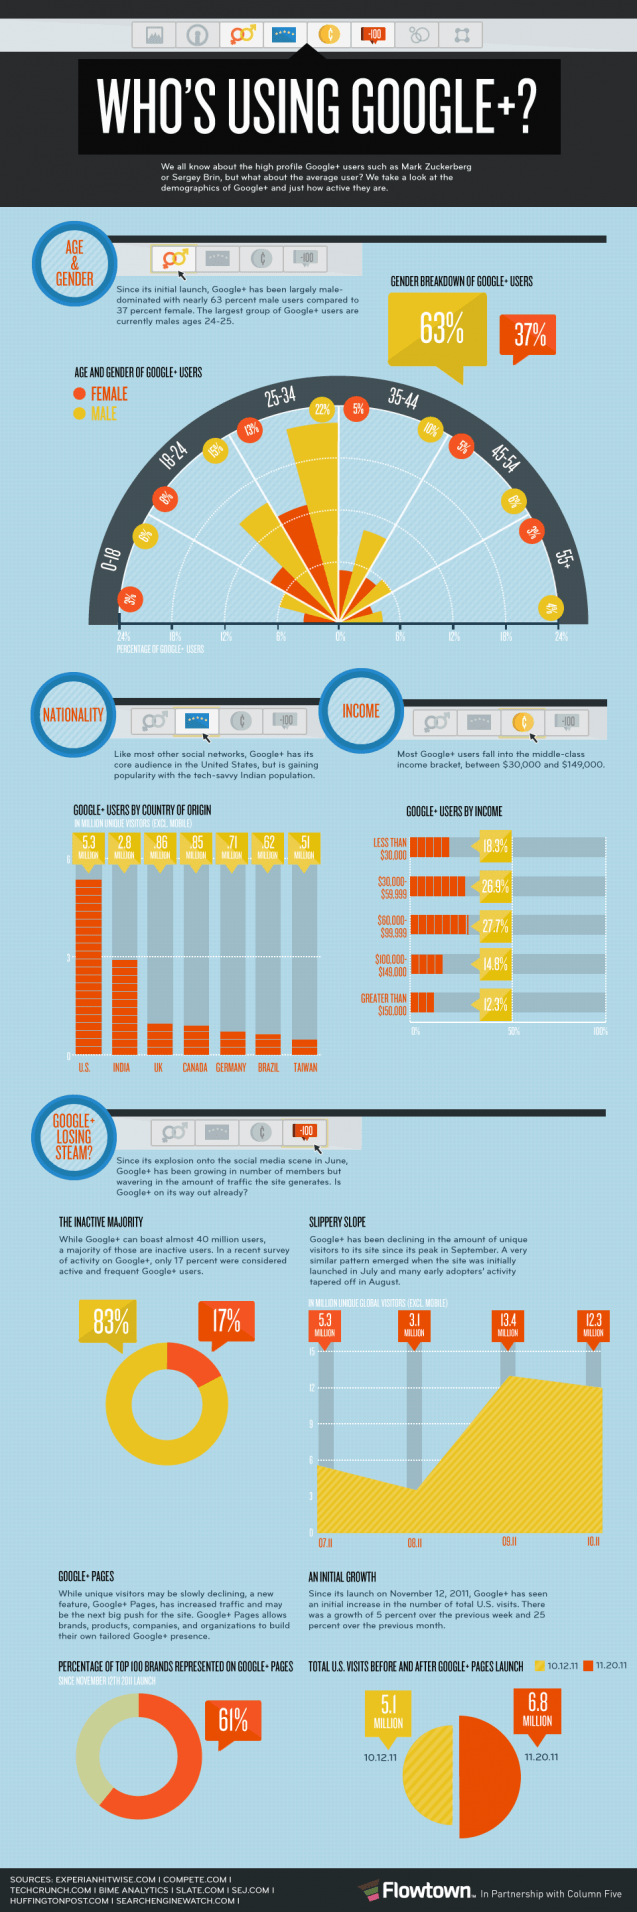 Breakdown of Who Uses Google+ [INFOGRAPHIC]